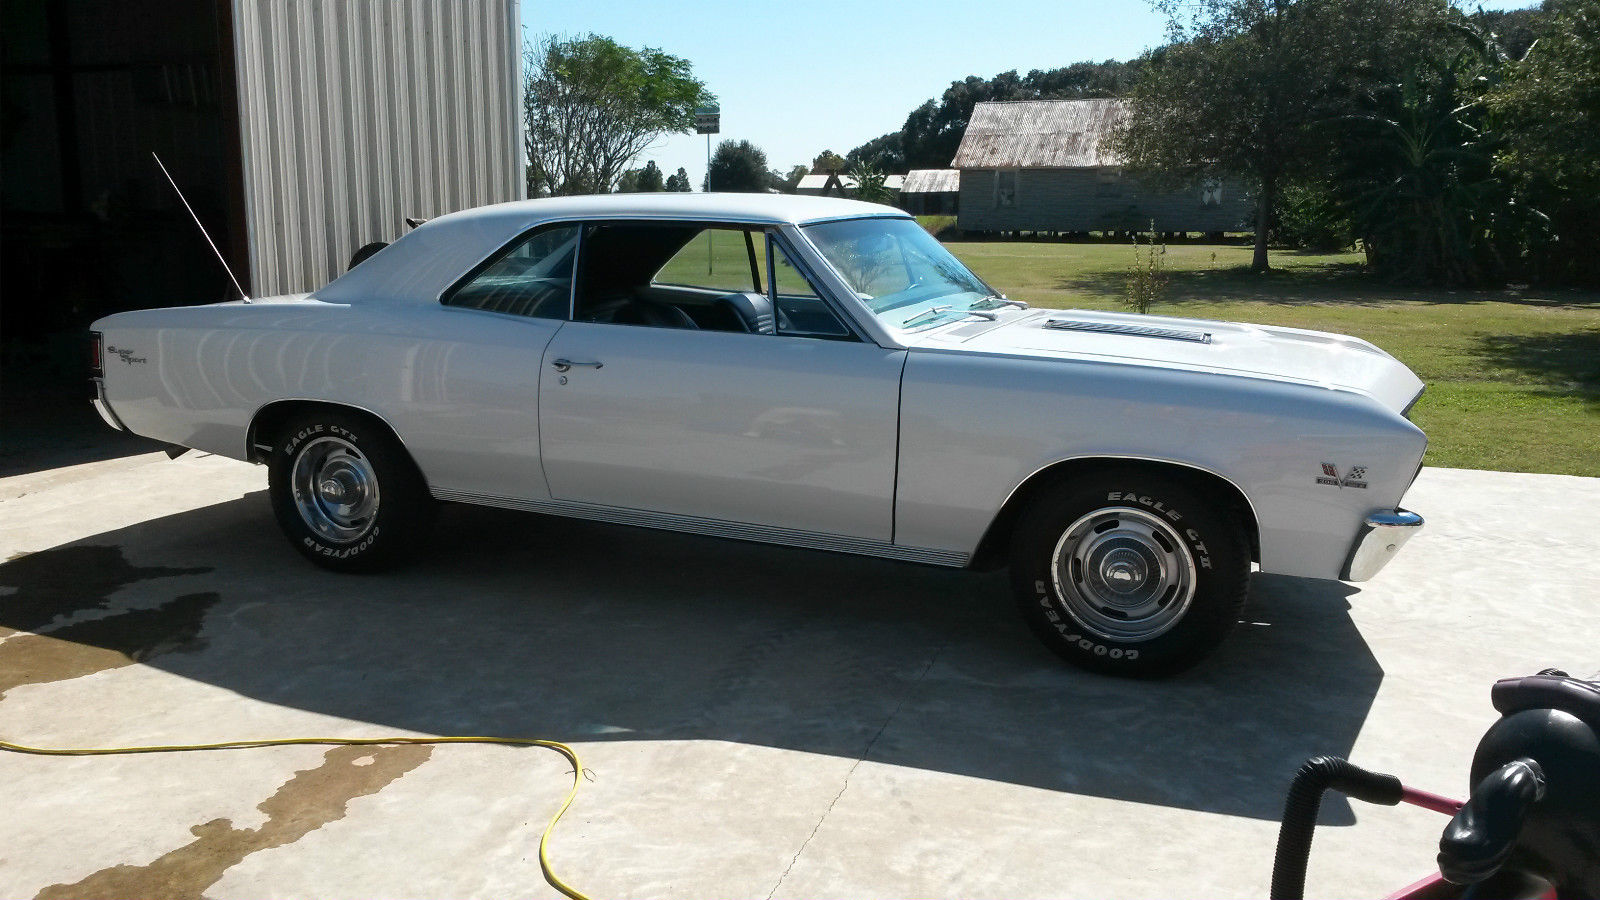 1967 Chevrolet Malibu - Project Cars For Sale